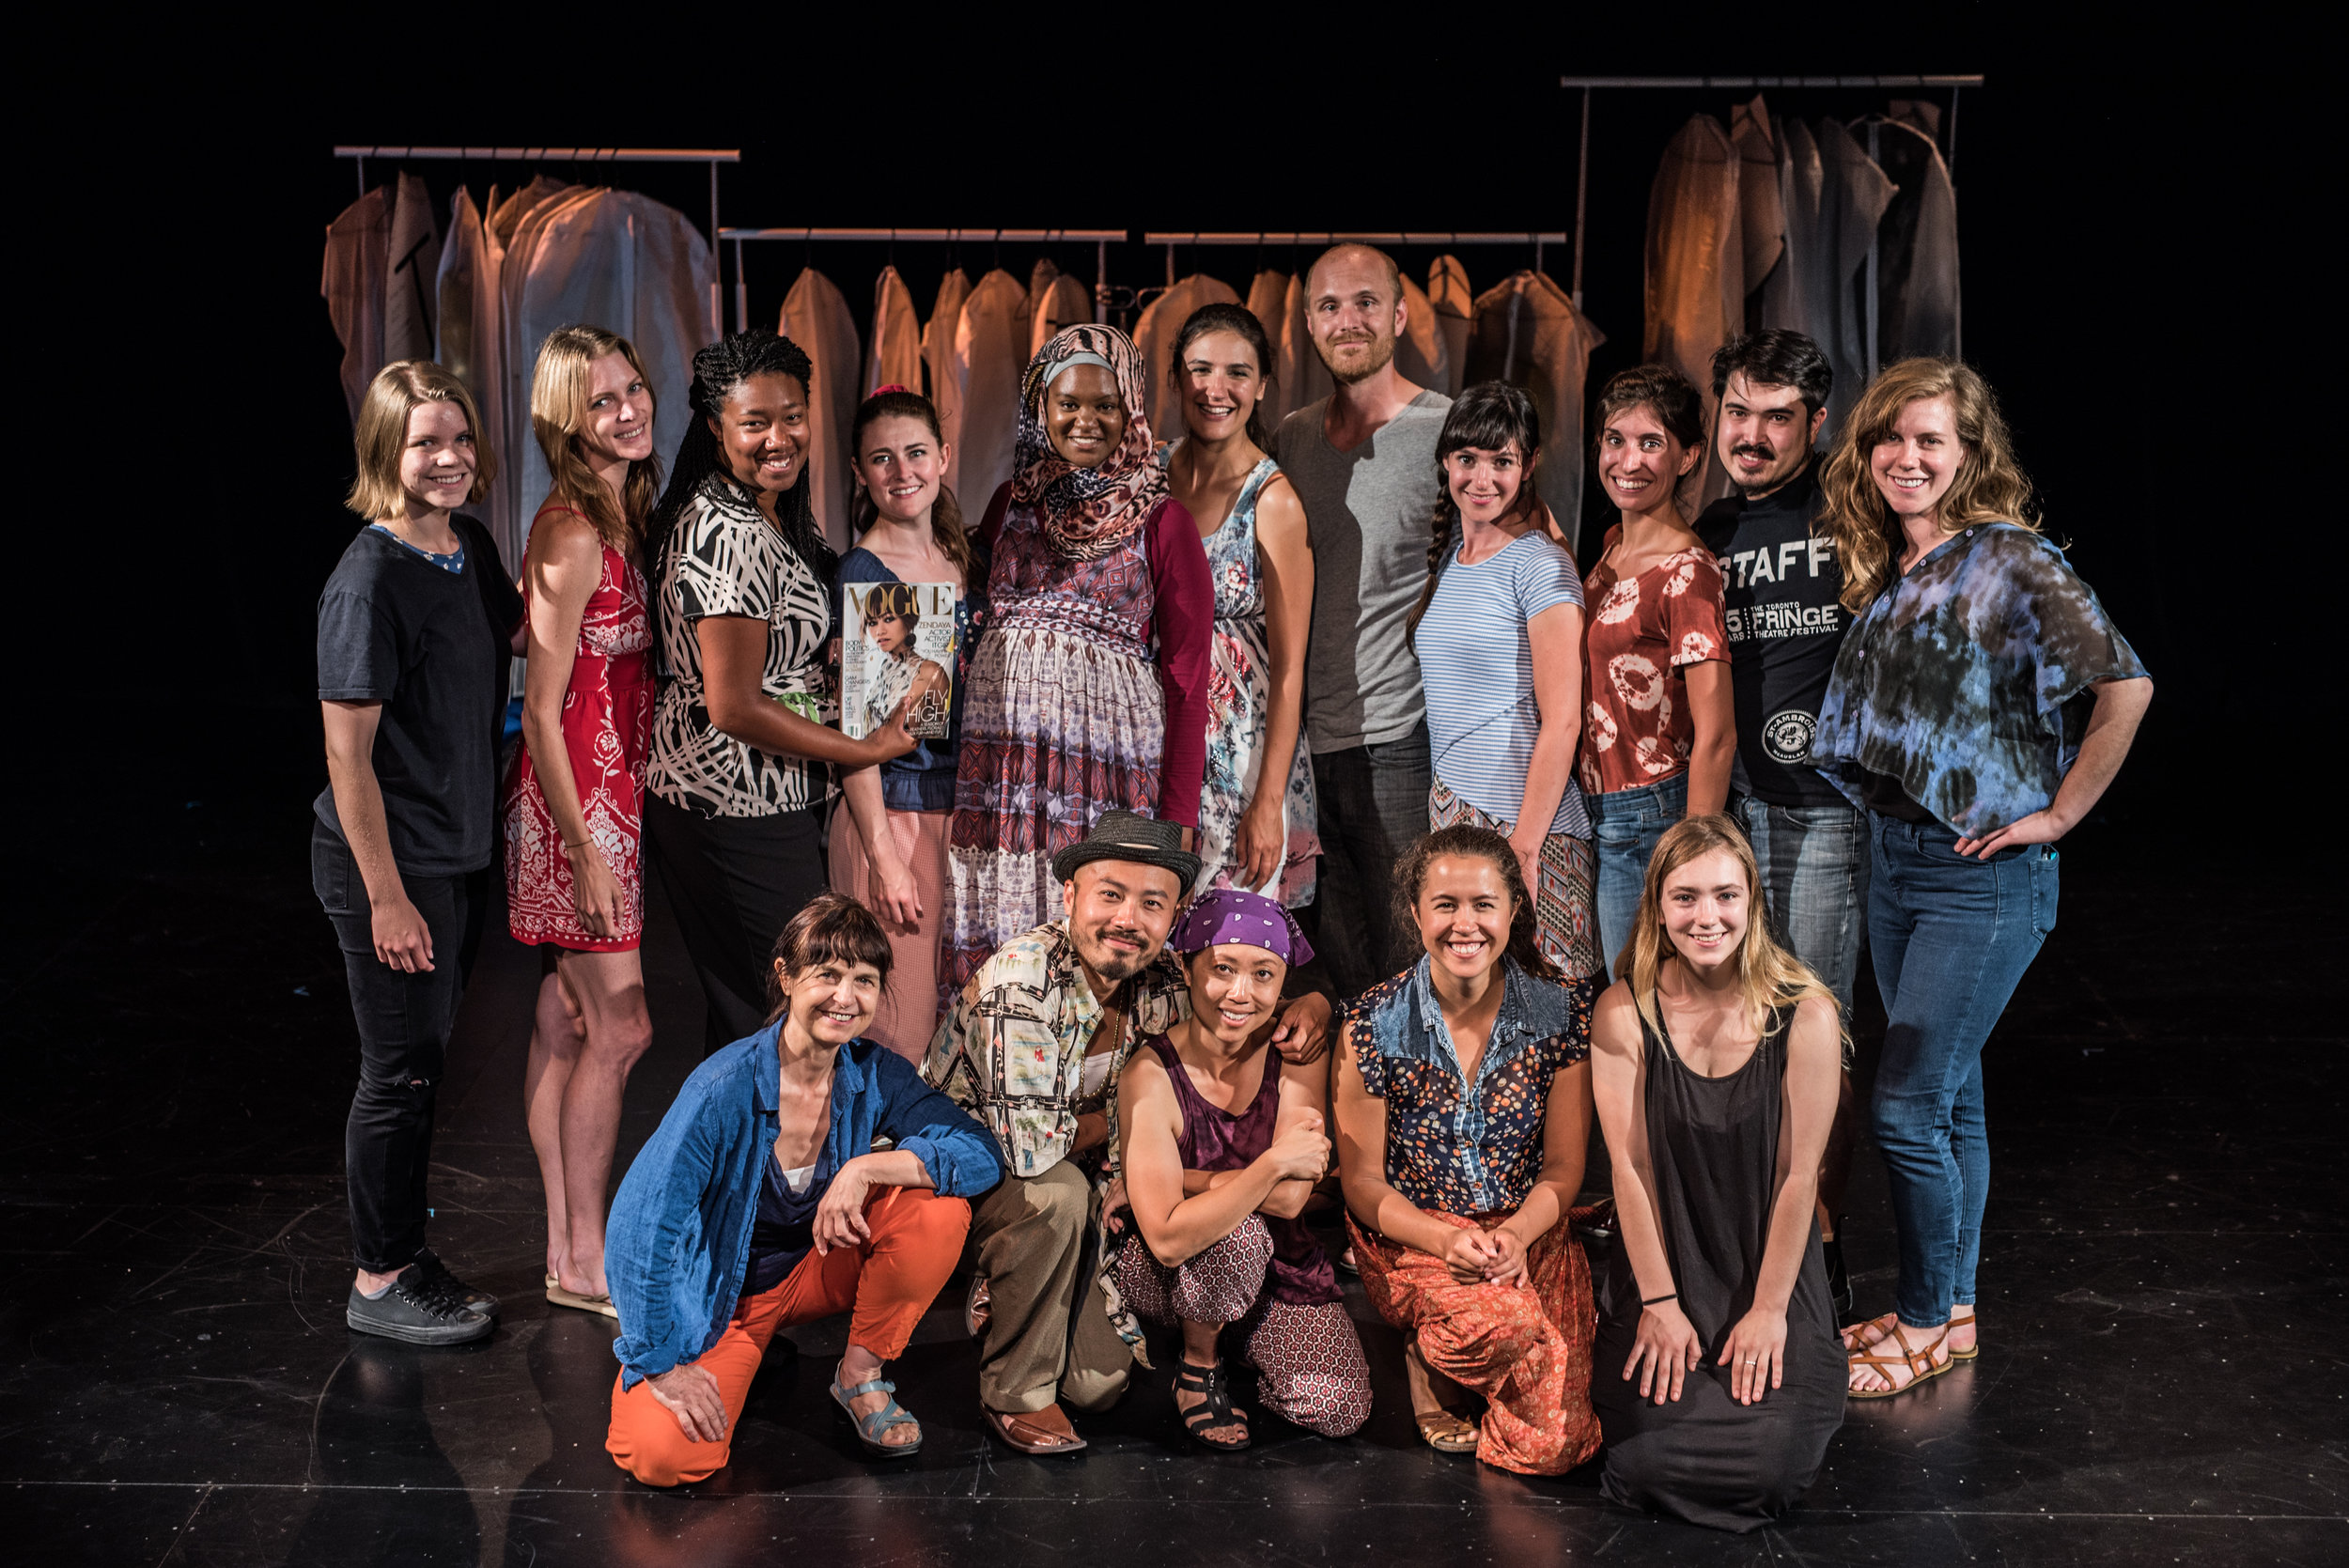 The entire cast and creative team for SWEAT. Photography by Dahlia Katz.